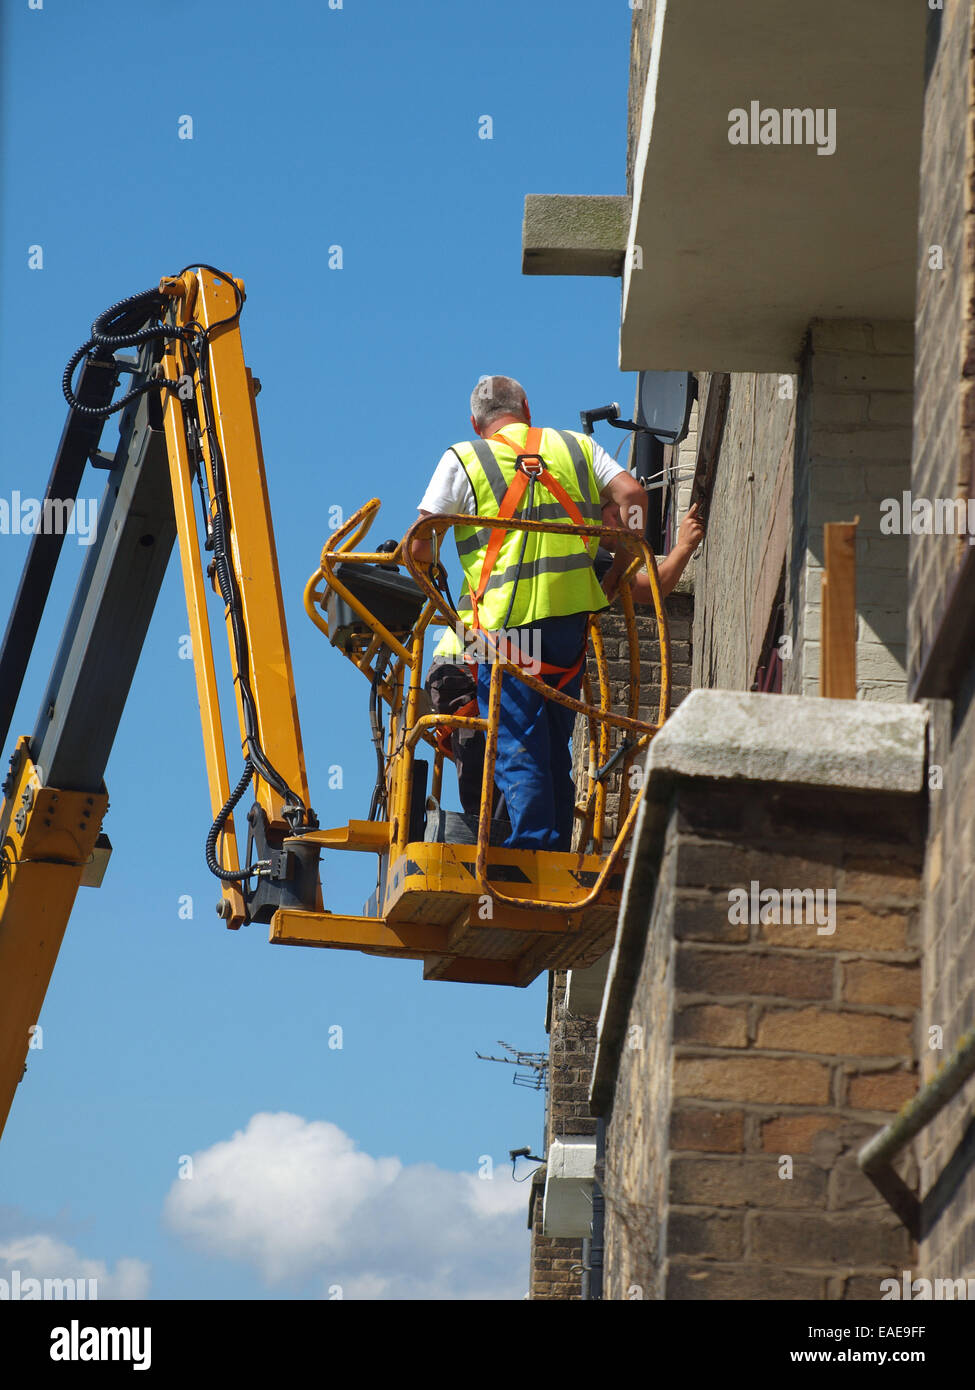 Tradesmen cement pointing the exterior of a building hoisted up upon a cherry picker vehicle for easy access nearer - Stock Image